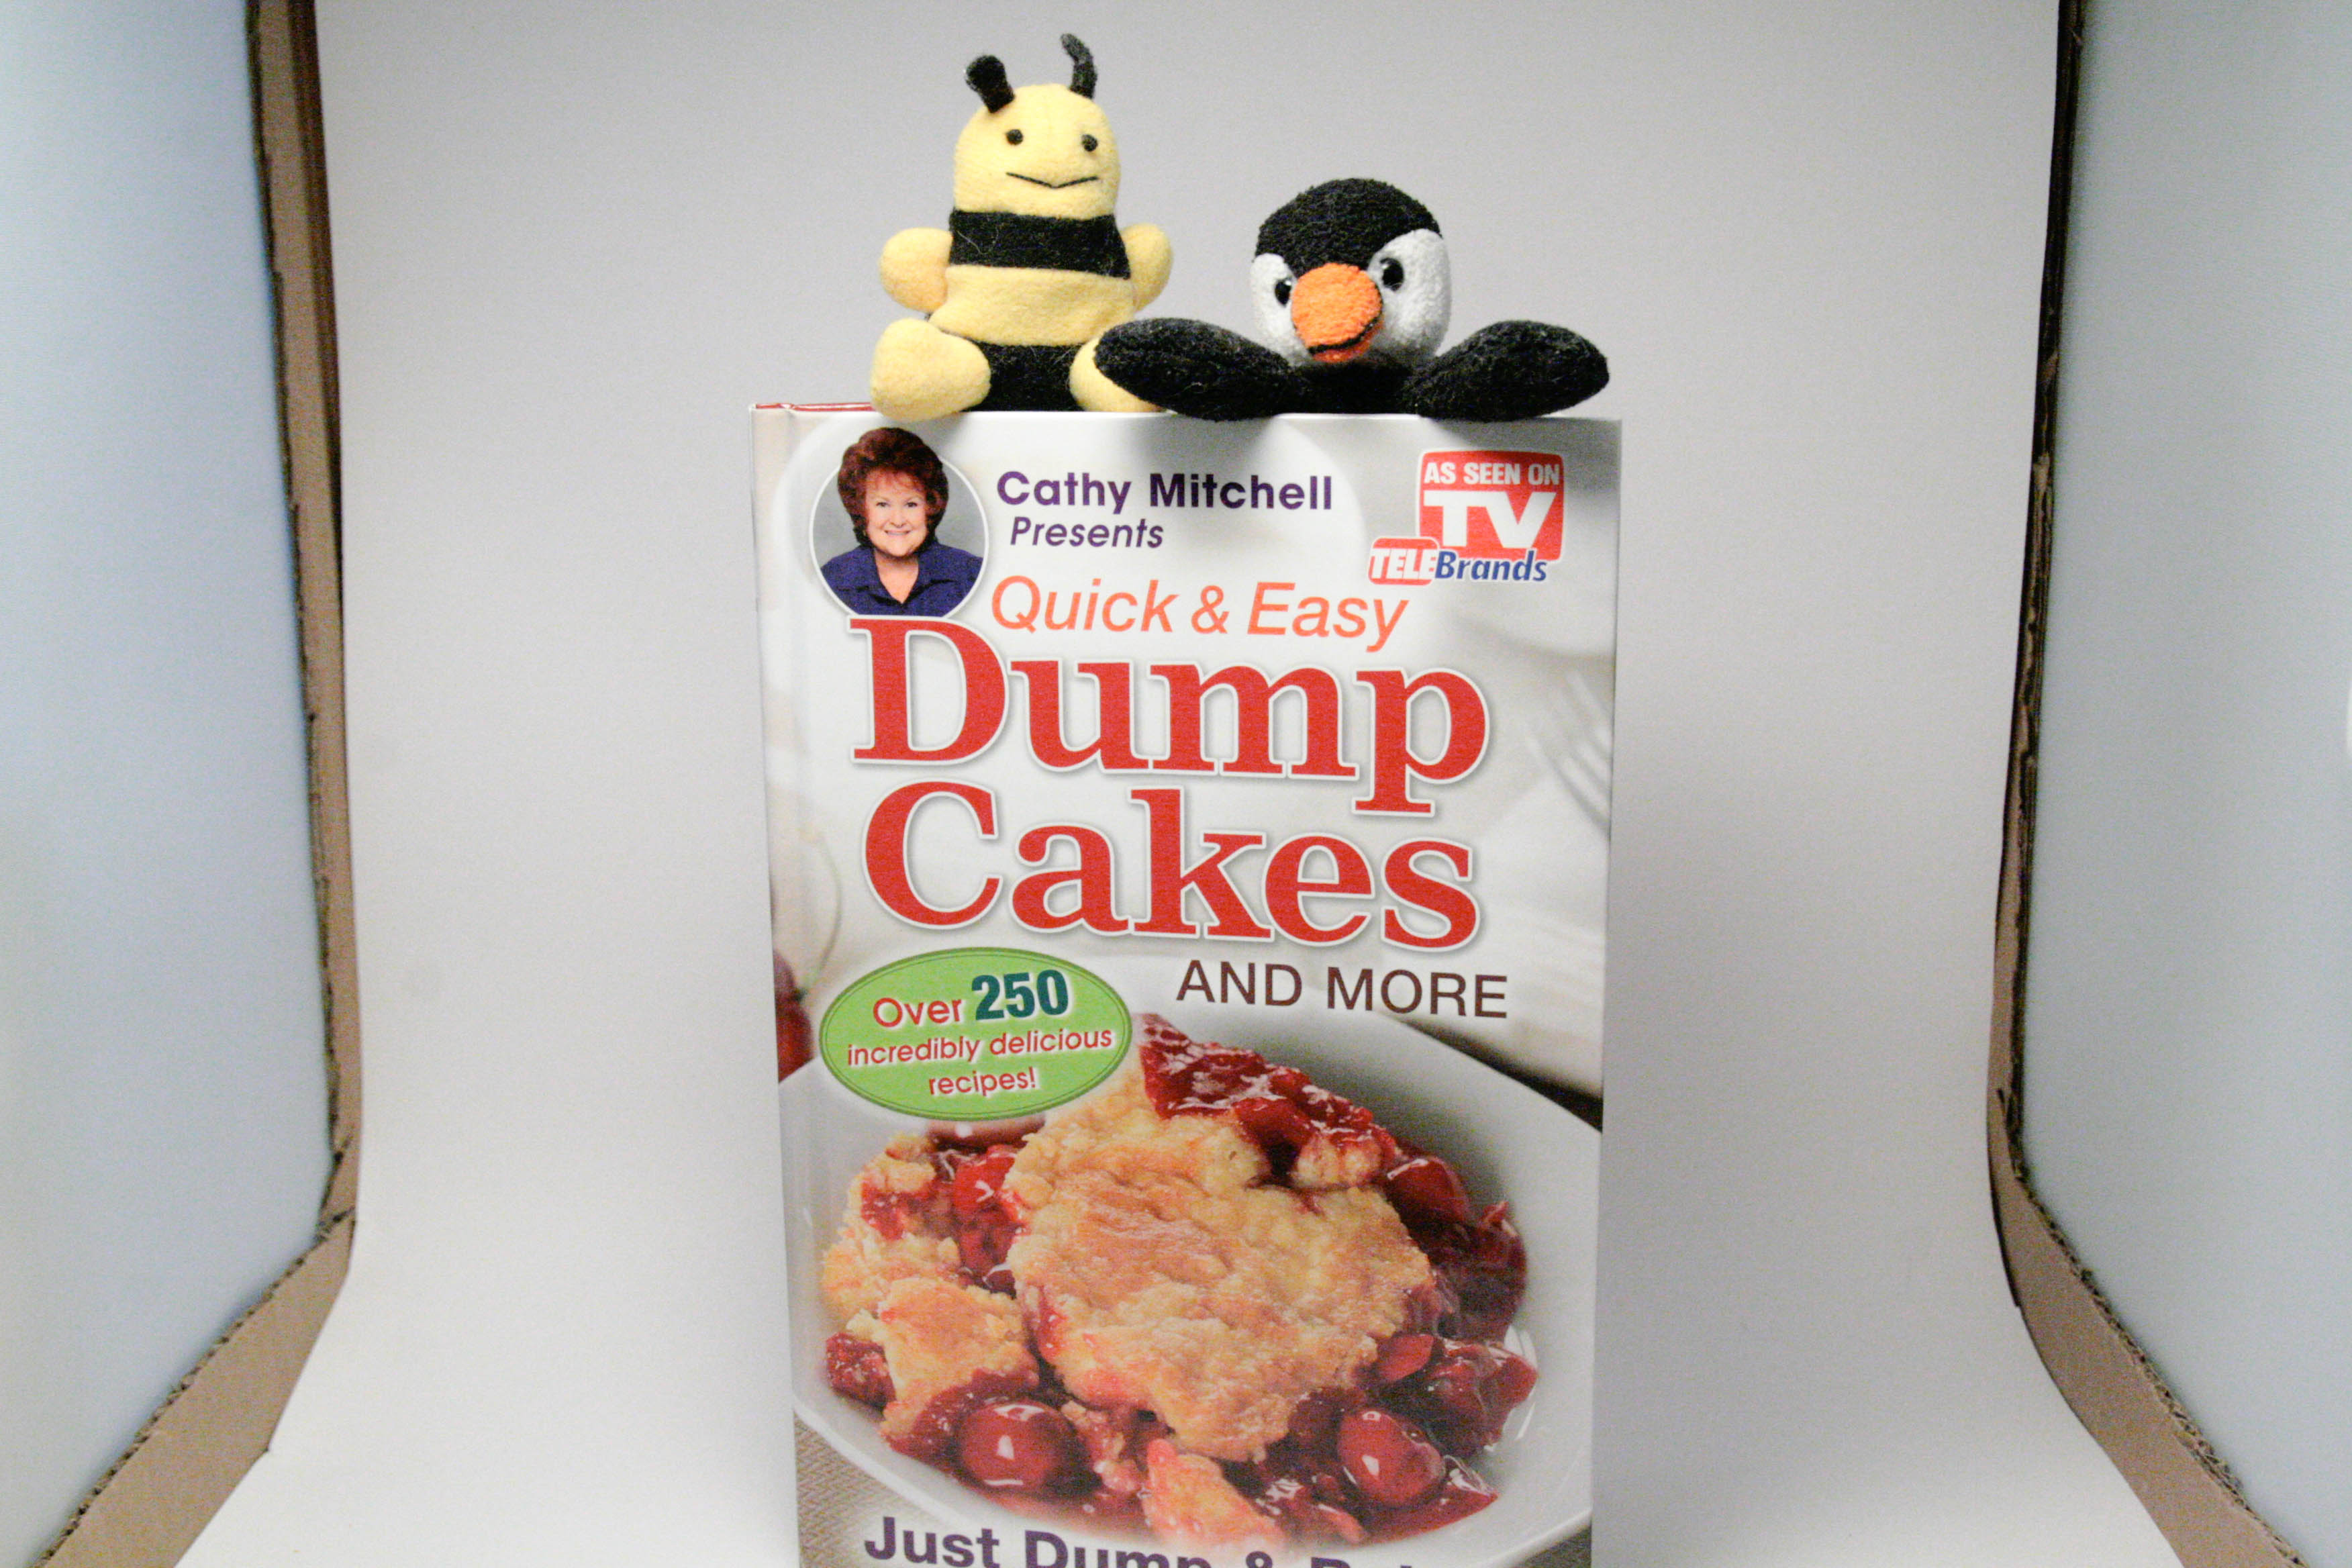 Lets eat dumps for dinner i finally cooked from that dump dinners anyway just about a year ago i undertook a harrowing cookbook journey deep into unknown territory when i cooked a cake called the dump cake dump cake forumfinder Gallery